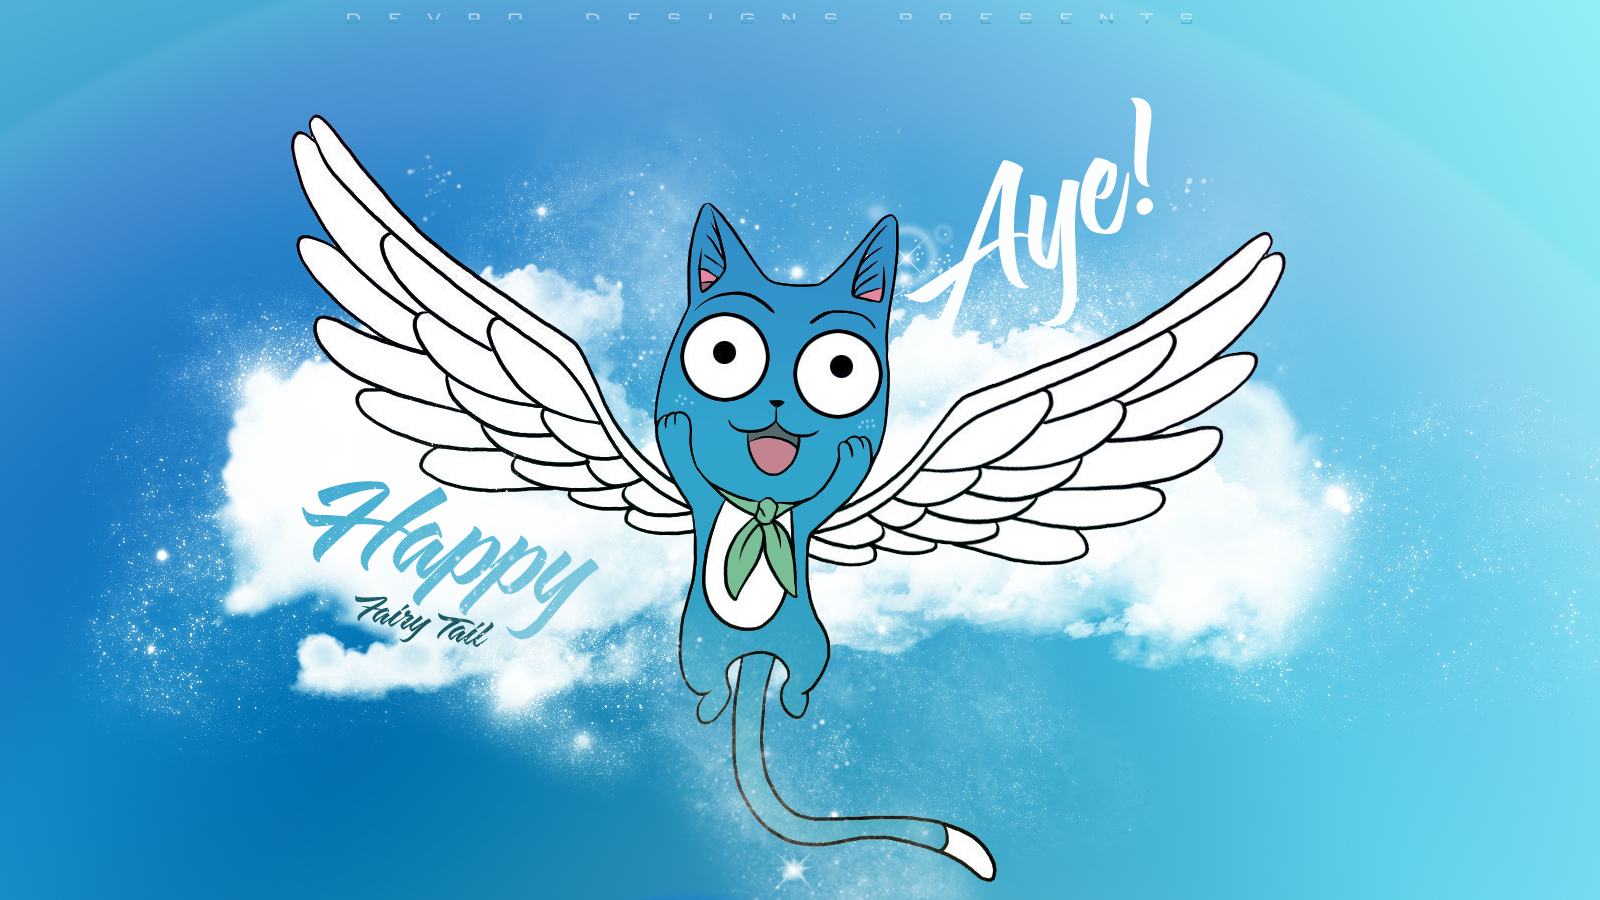 Fairy tail wallpaper happy aye